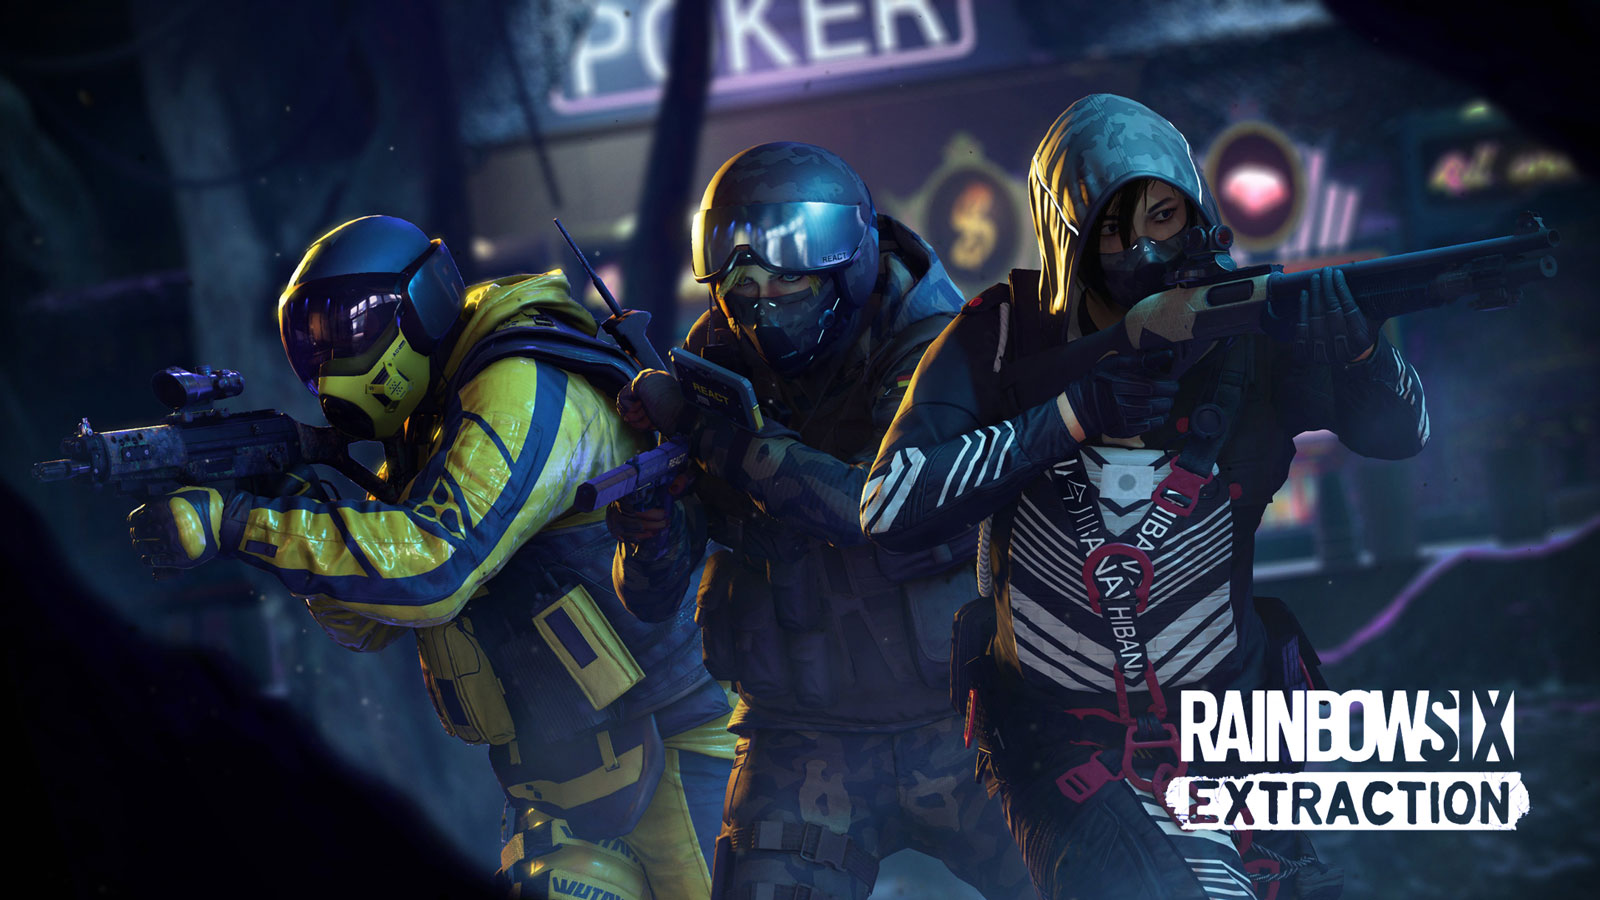 Free Rainbow Six Extraction Wallpaper in 1600x900